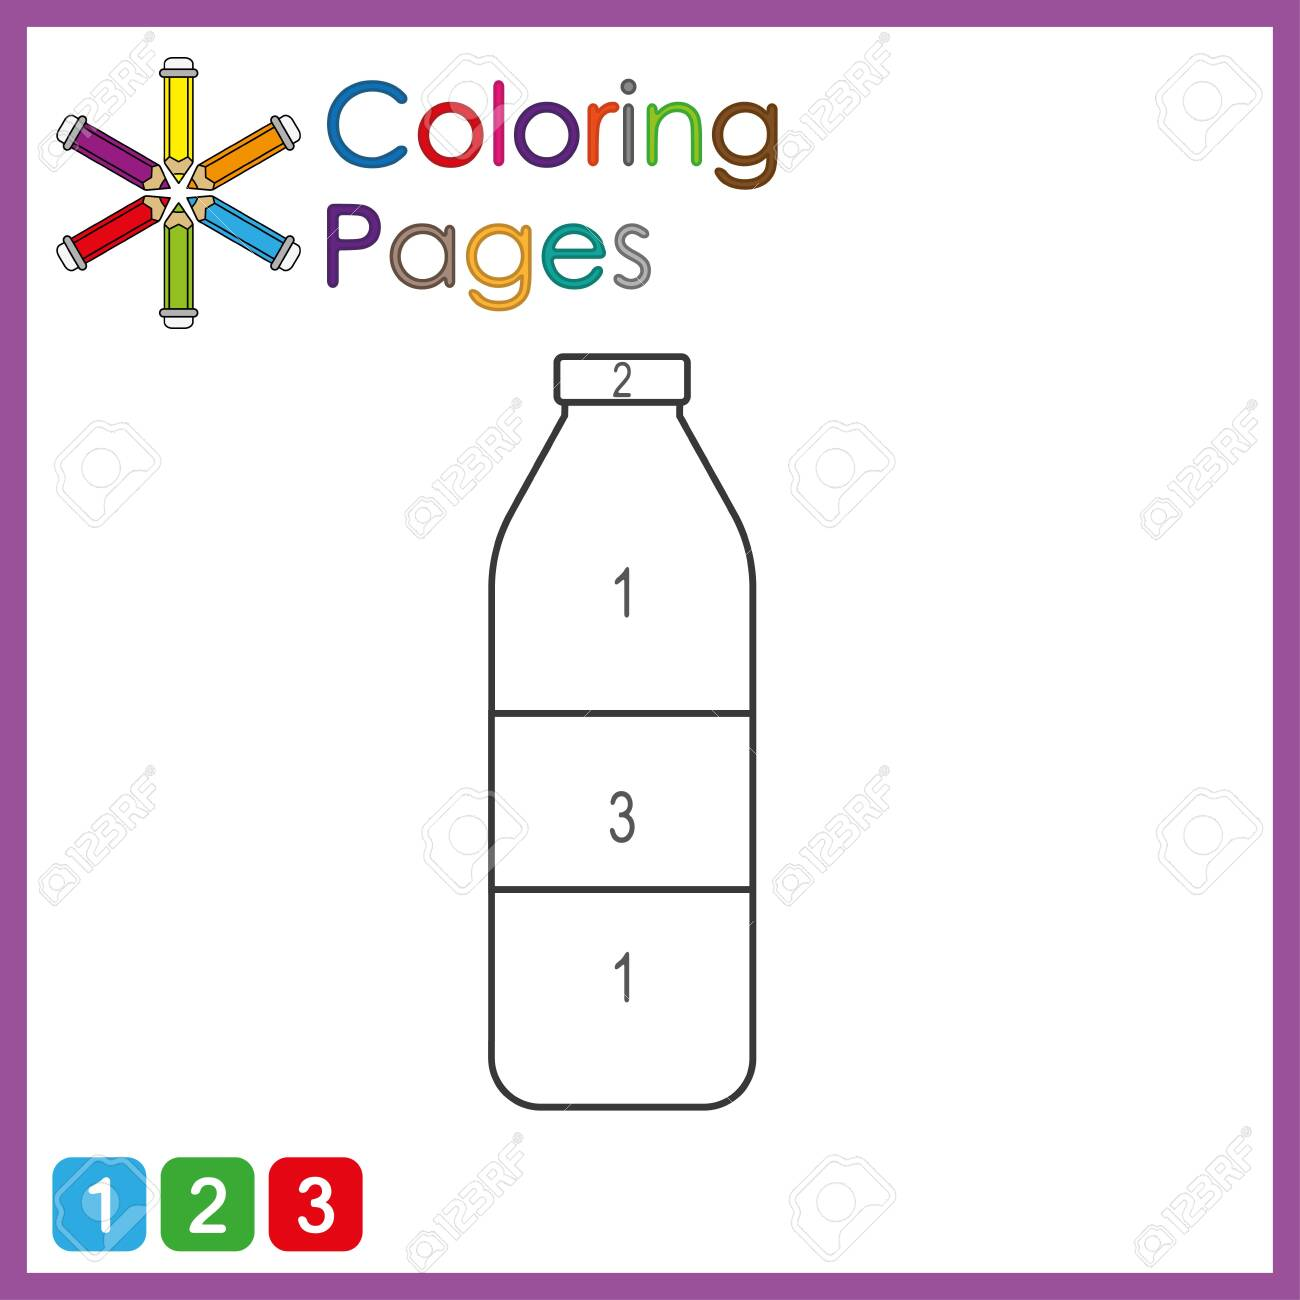 coloring page for kids, color the parts of the object according to numbers, color by numbers, activity pages - 122681795